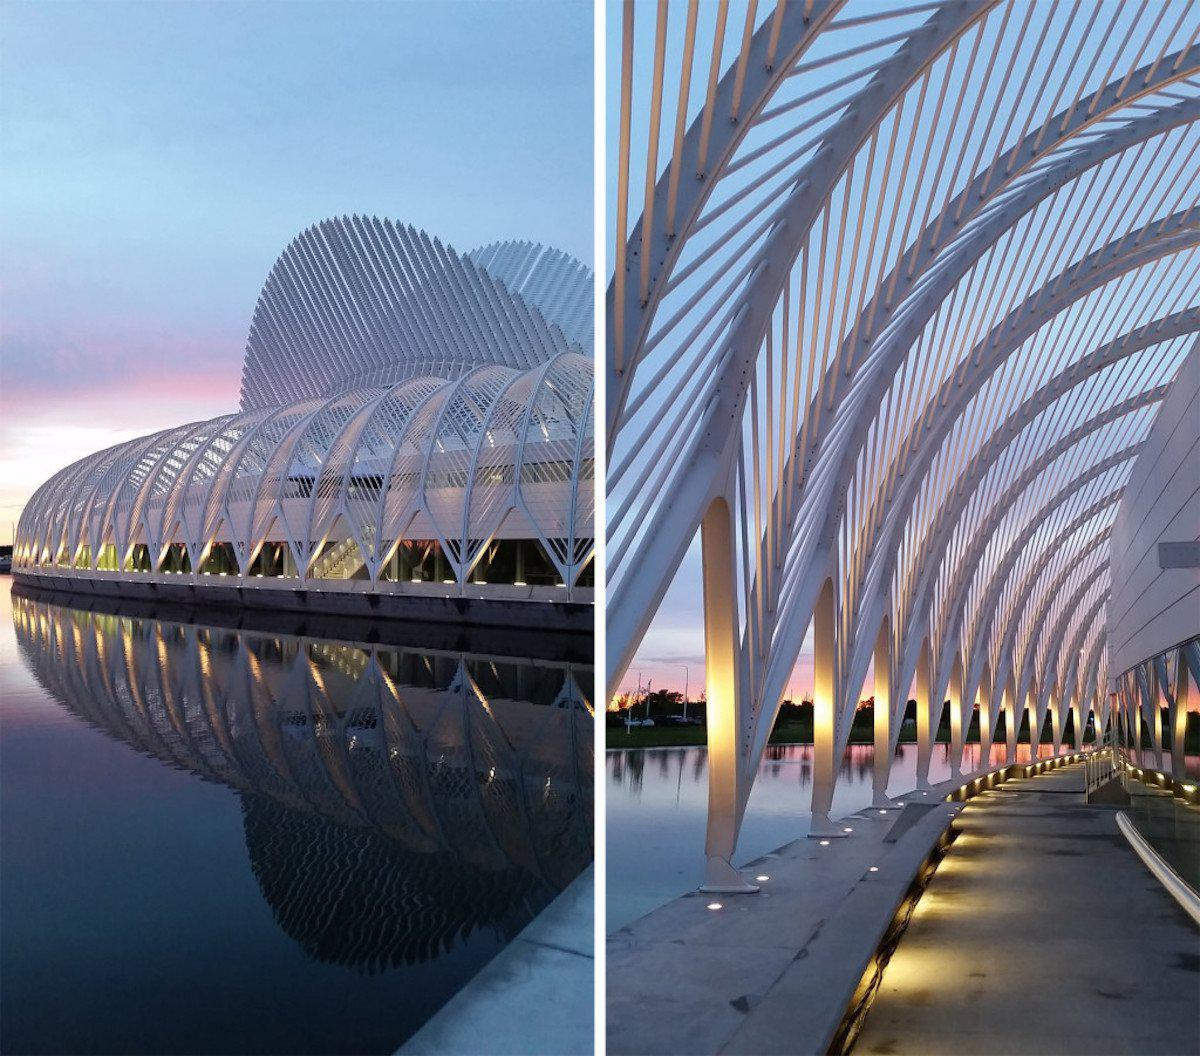 the-innovation-science-and-technology-building-at-florida-polytechnic-university-in-lakeland